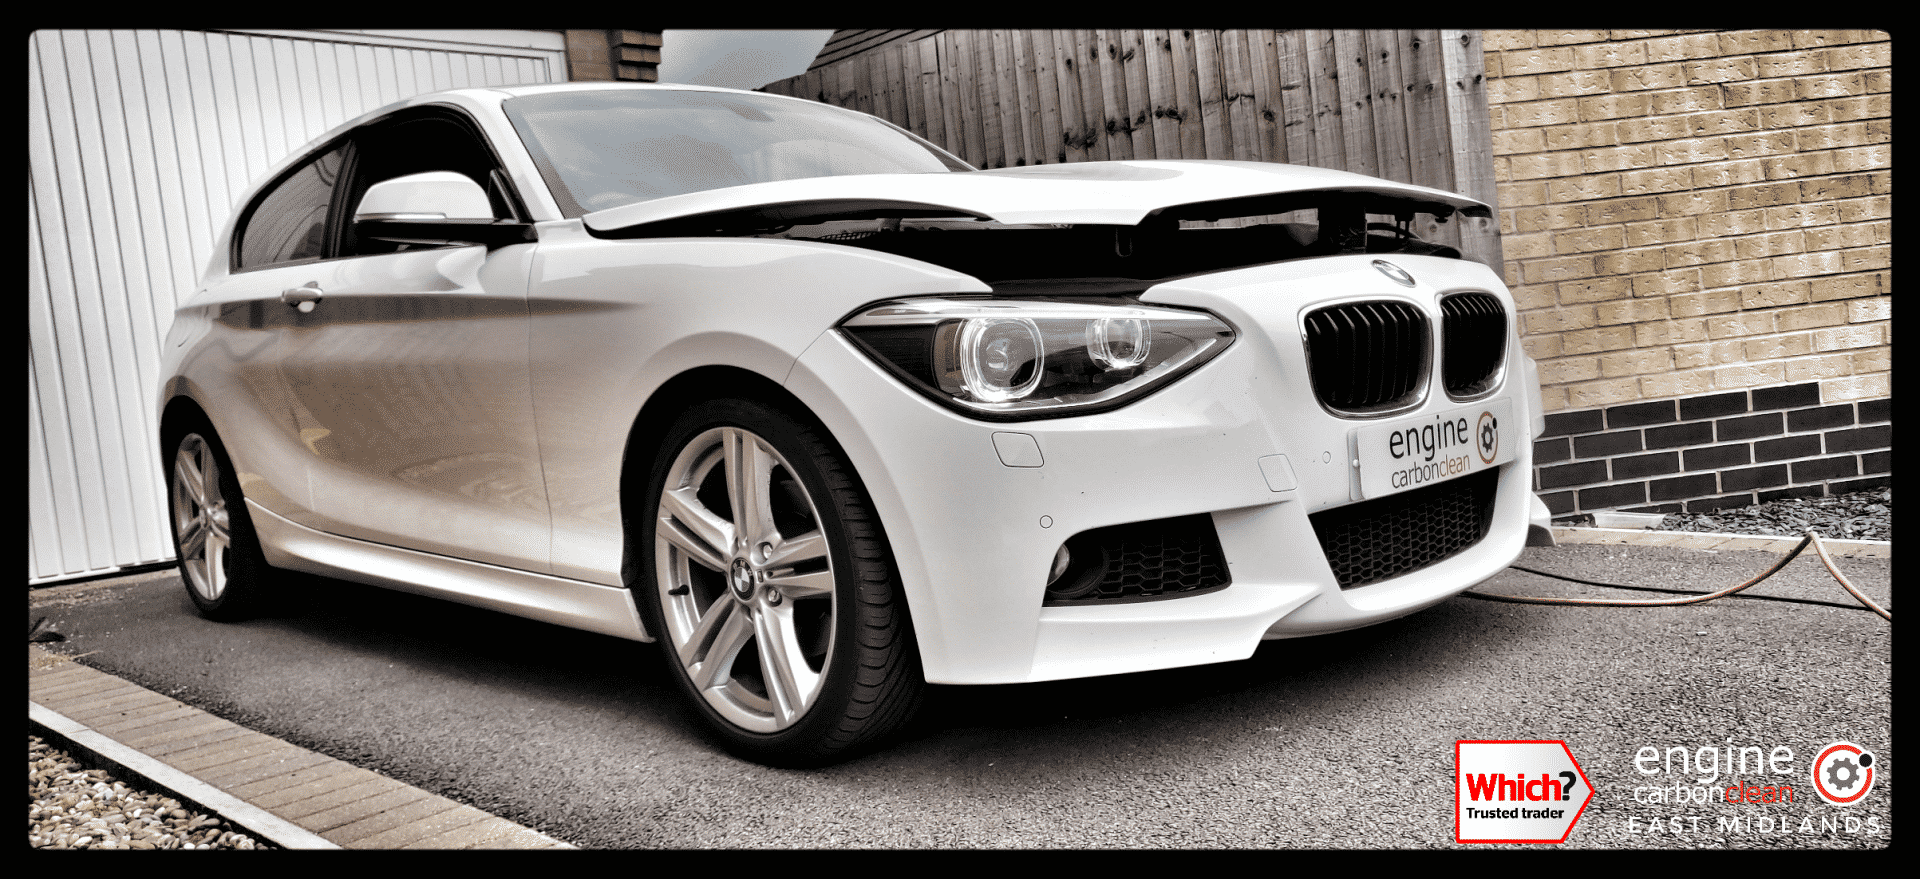 Vehicle purchase diagnostic consultation and Engine Carbon Clean - BMW 120d (2013 - 97,723 miles)